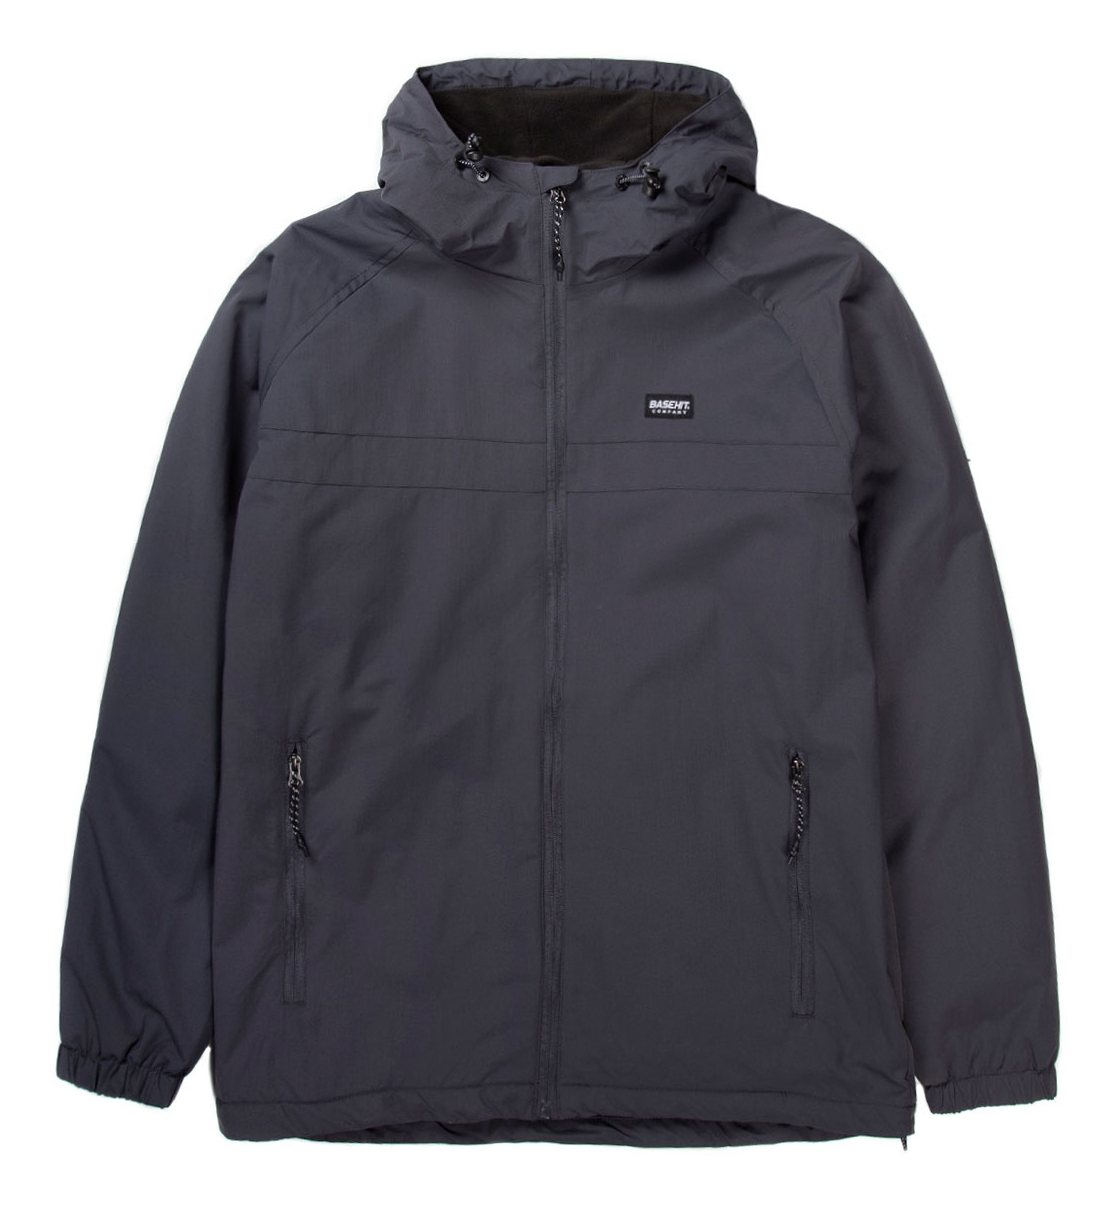 Basehit Ss19 Men'S Jacket With Hood